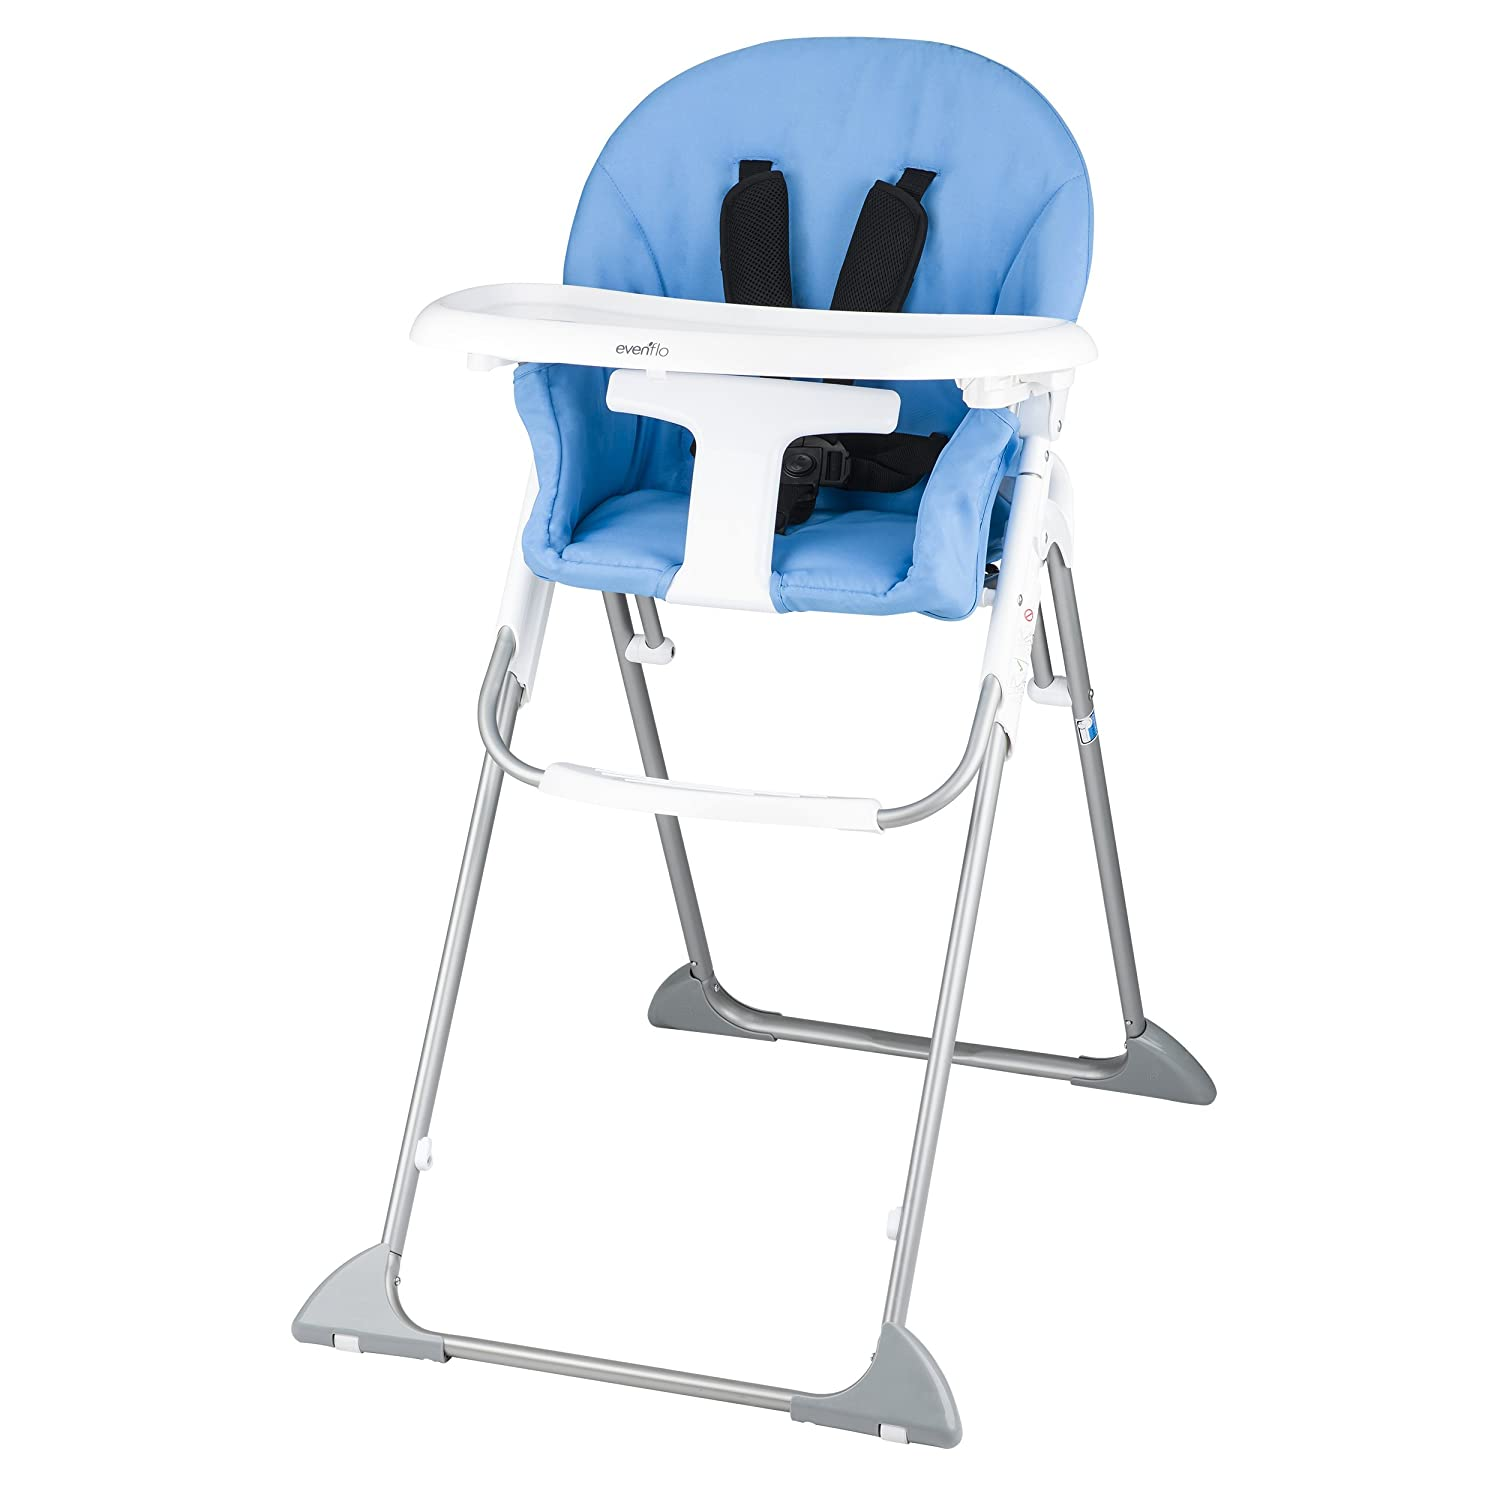 Evenflo Clifton High Chair 25311935